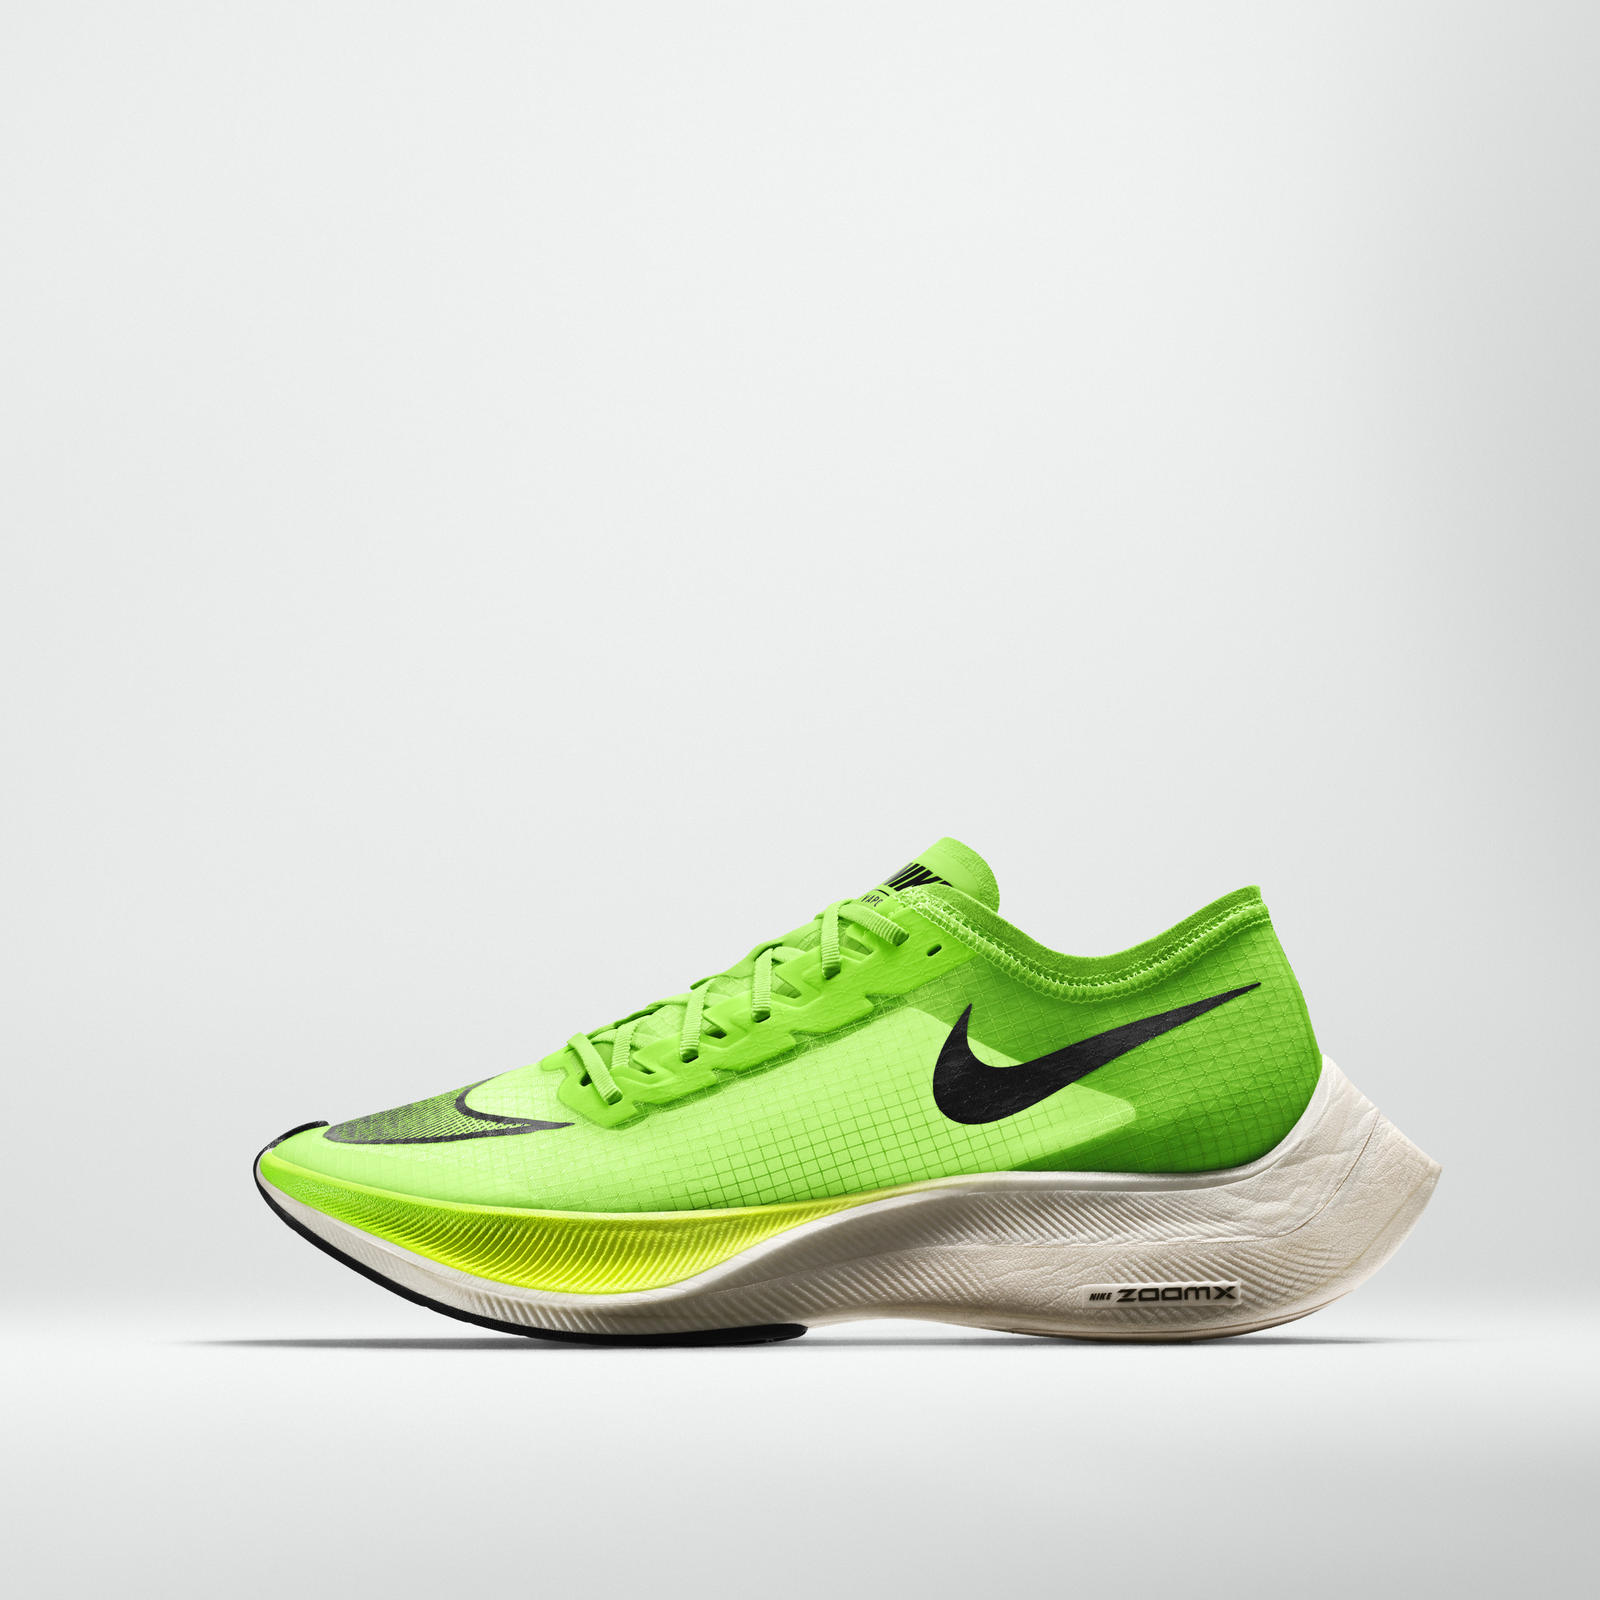 Nike Air Zoom Pegasus 36 Nike Zoom Pegasus Turbo 2 Nike ZoomX Vaporfly Next% Nike Zoom Fly 3  17